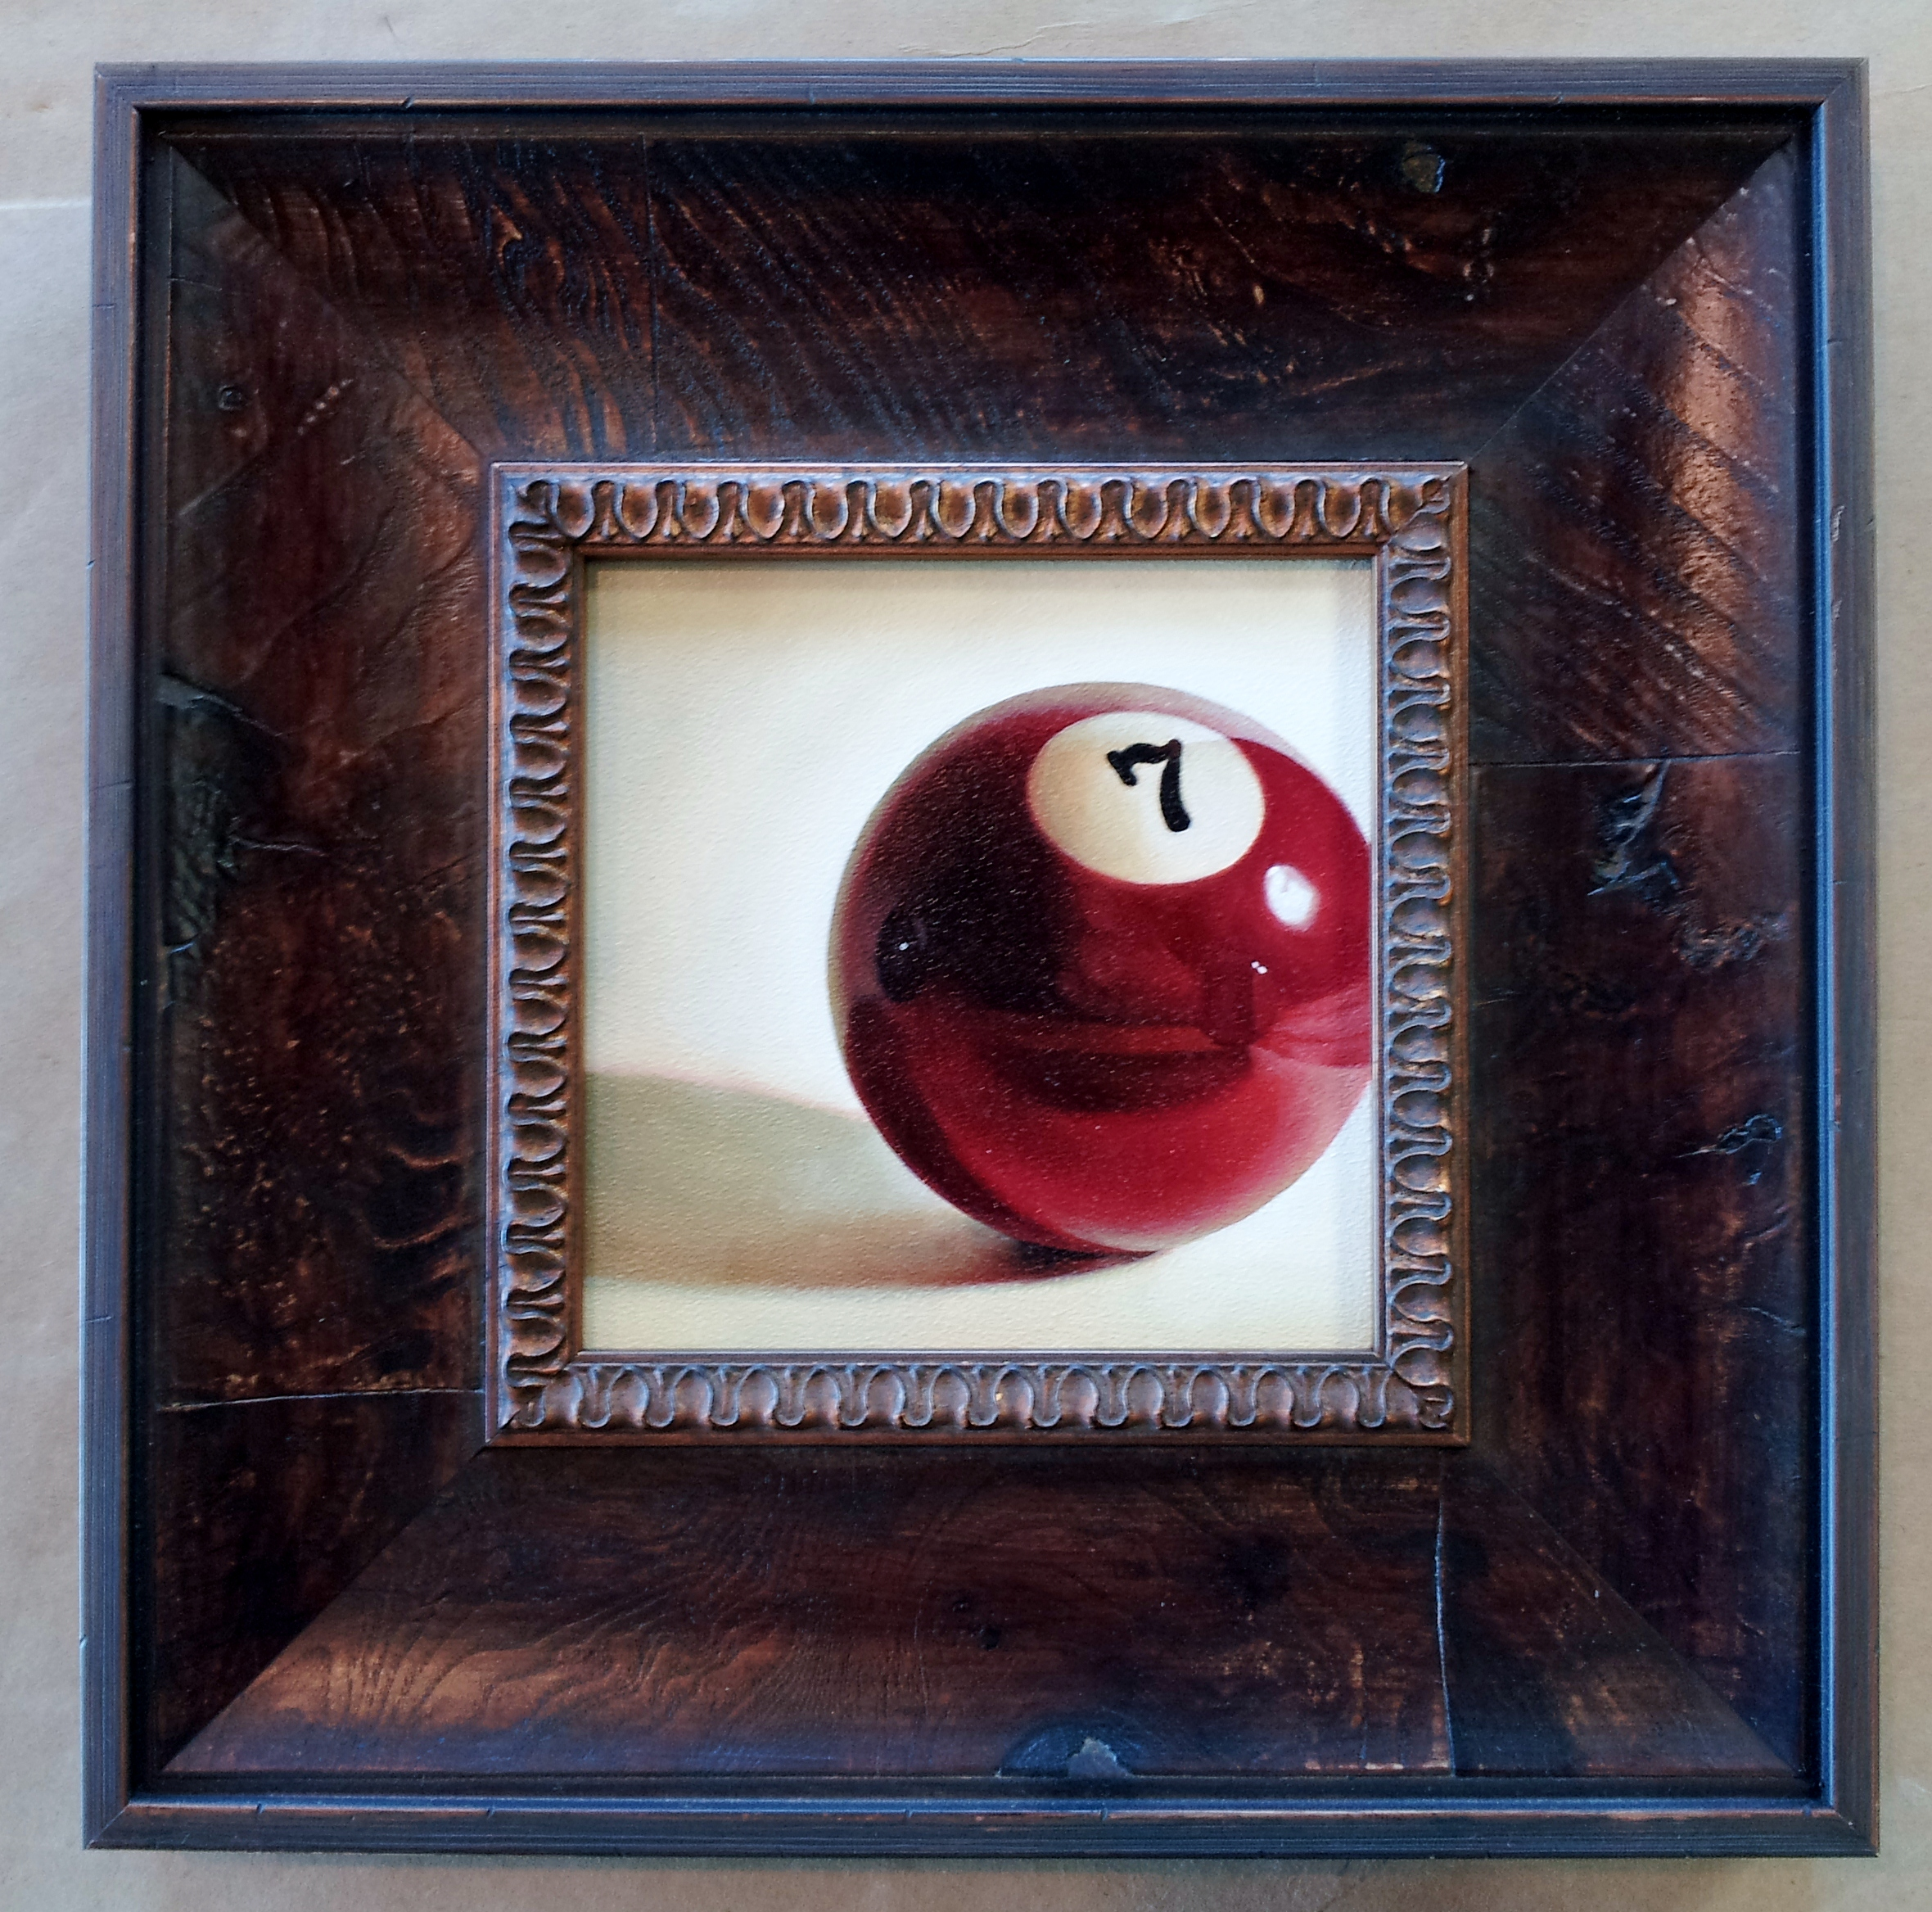 Framed cue ball #7 painting